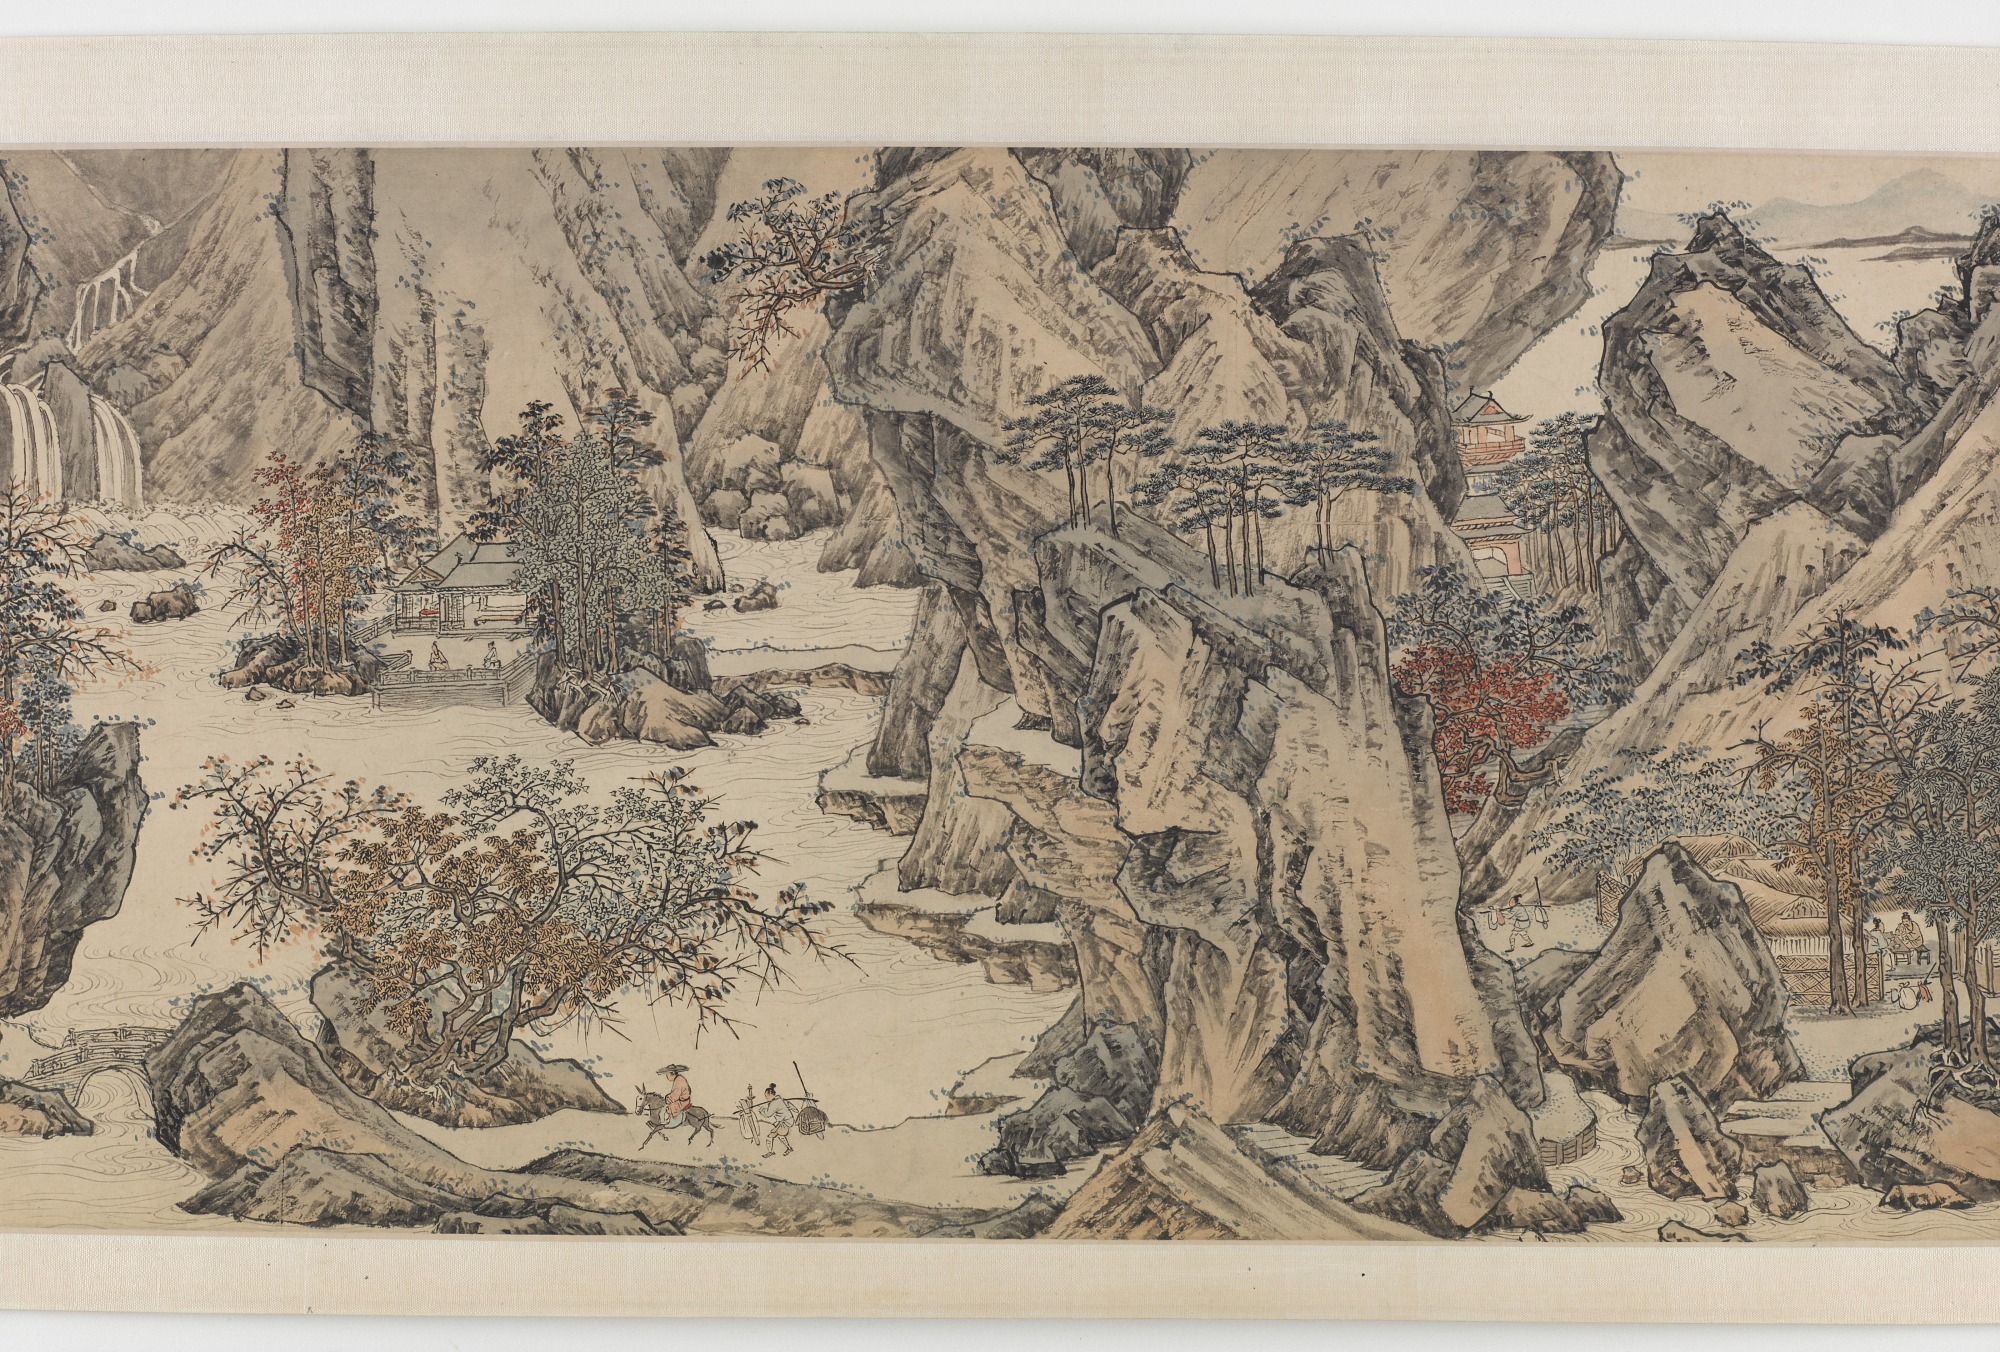 section 9: Landscape in the Style of Li Tang